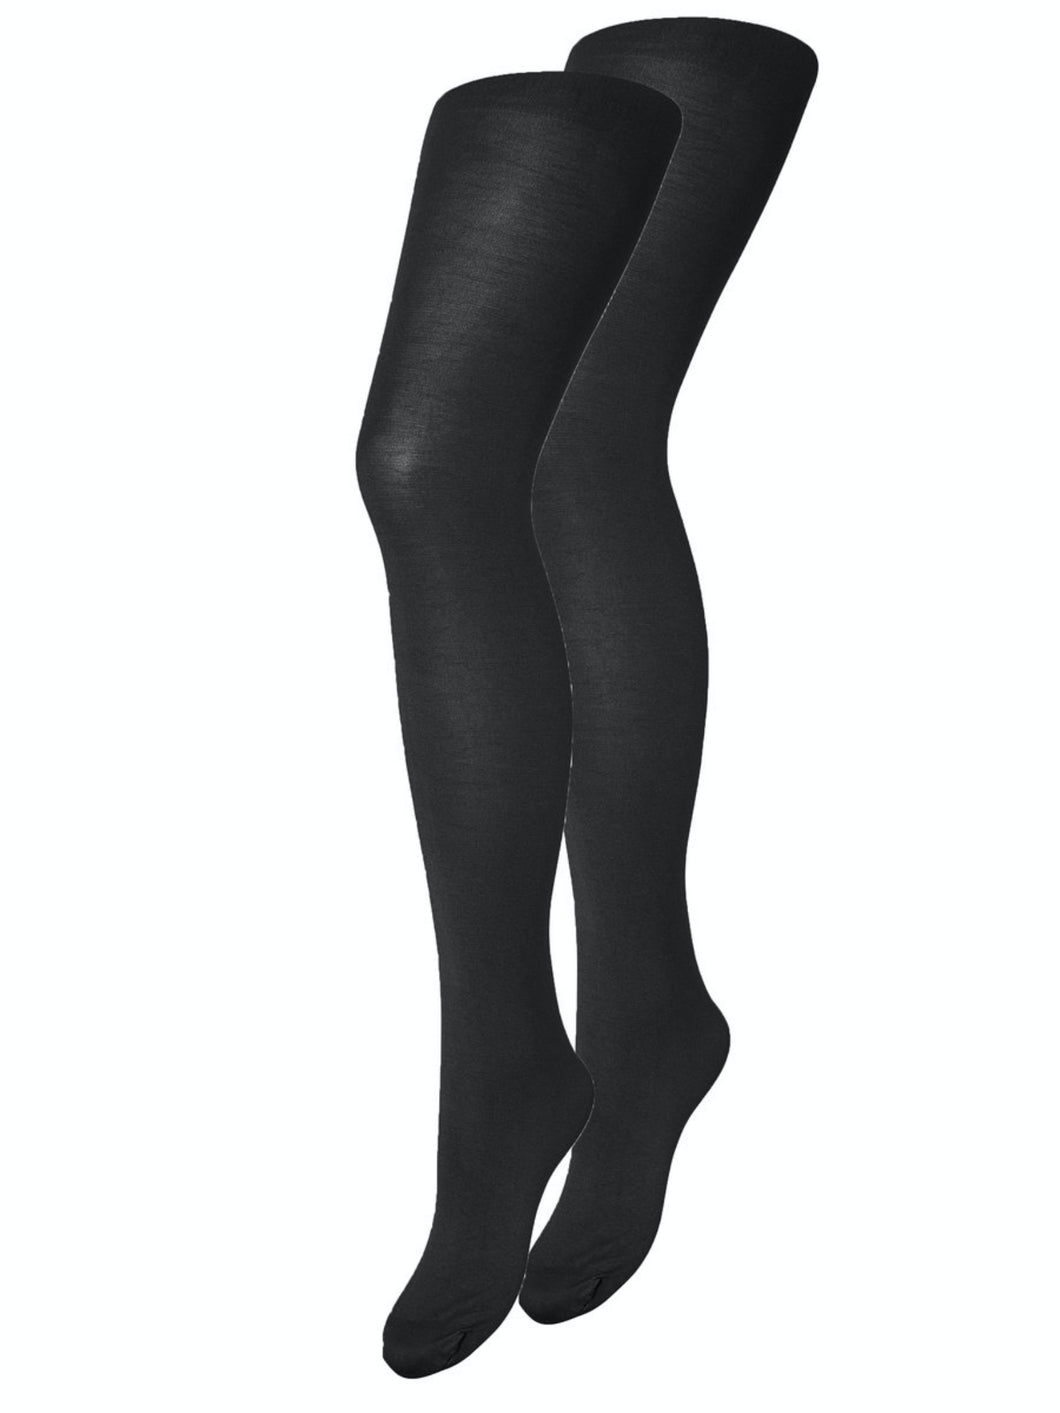 New Nikoline 40 Den 2-Pack Tights - Black / XS/S -